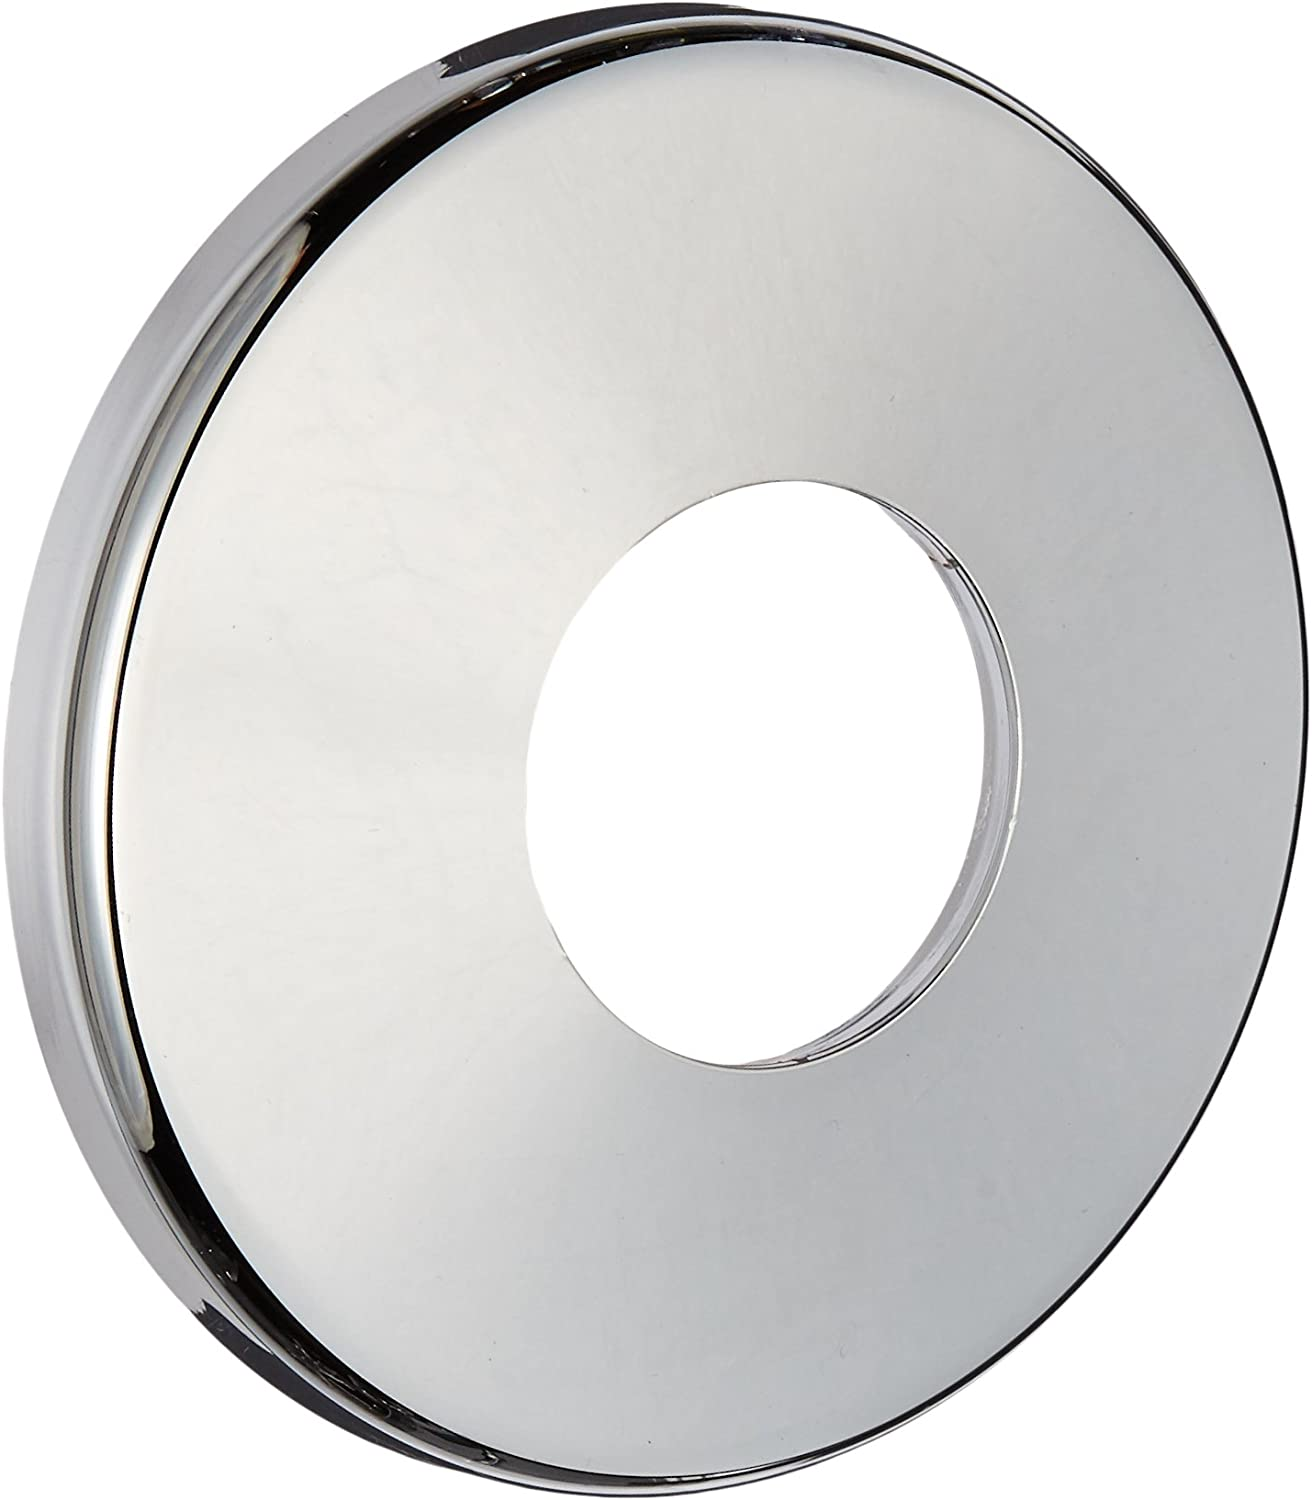 Hayward SP1042 ABS Plastic Chrome Plated Round Escutcheon Plate for 1-1/2-Inch Pipe